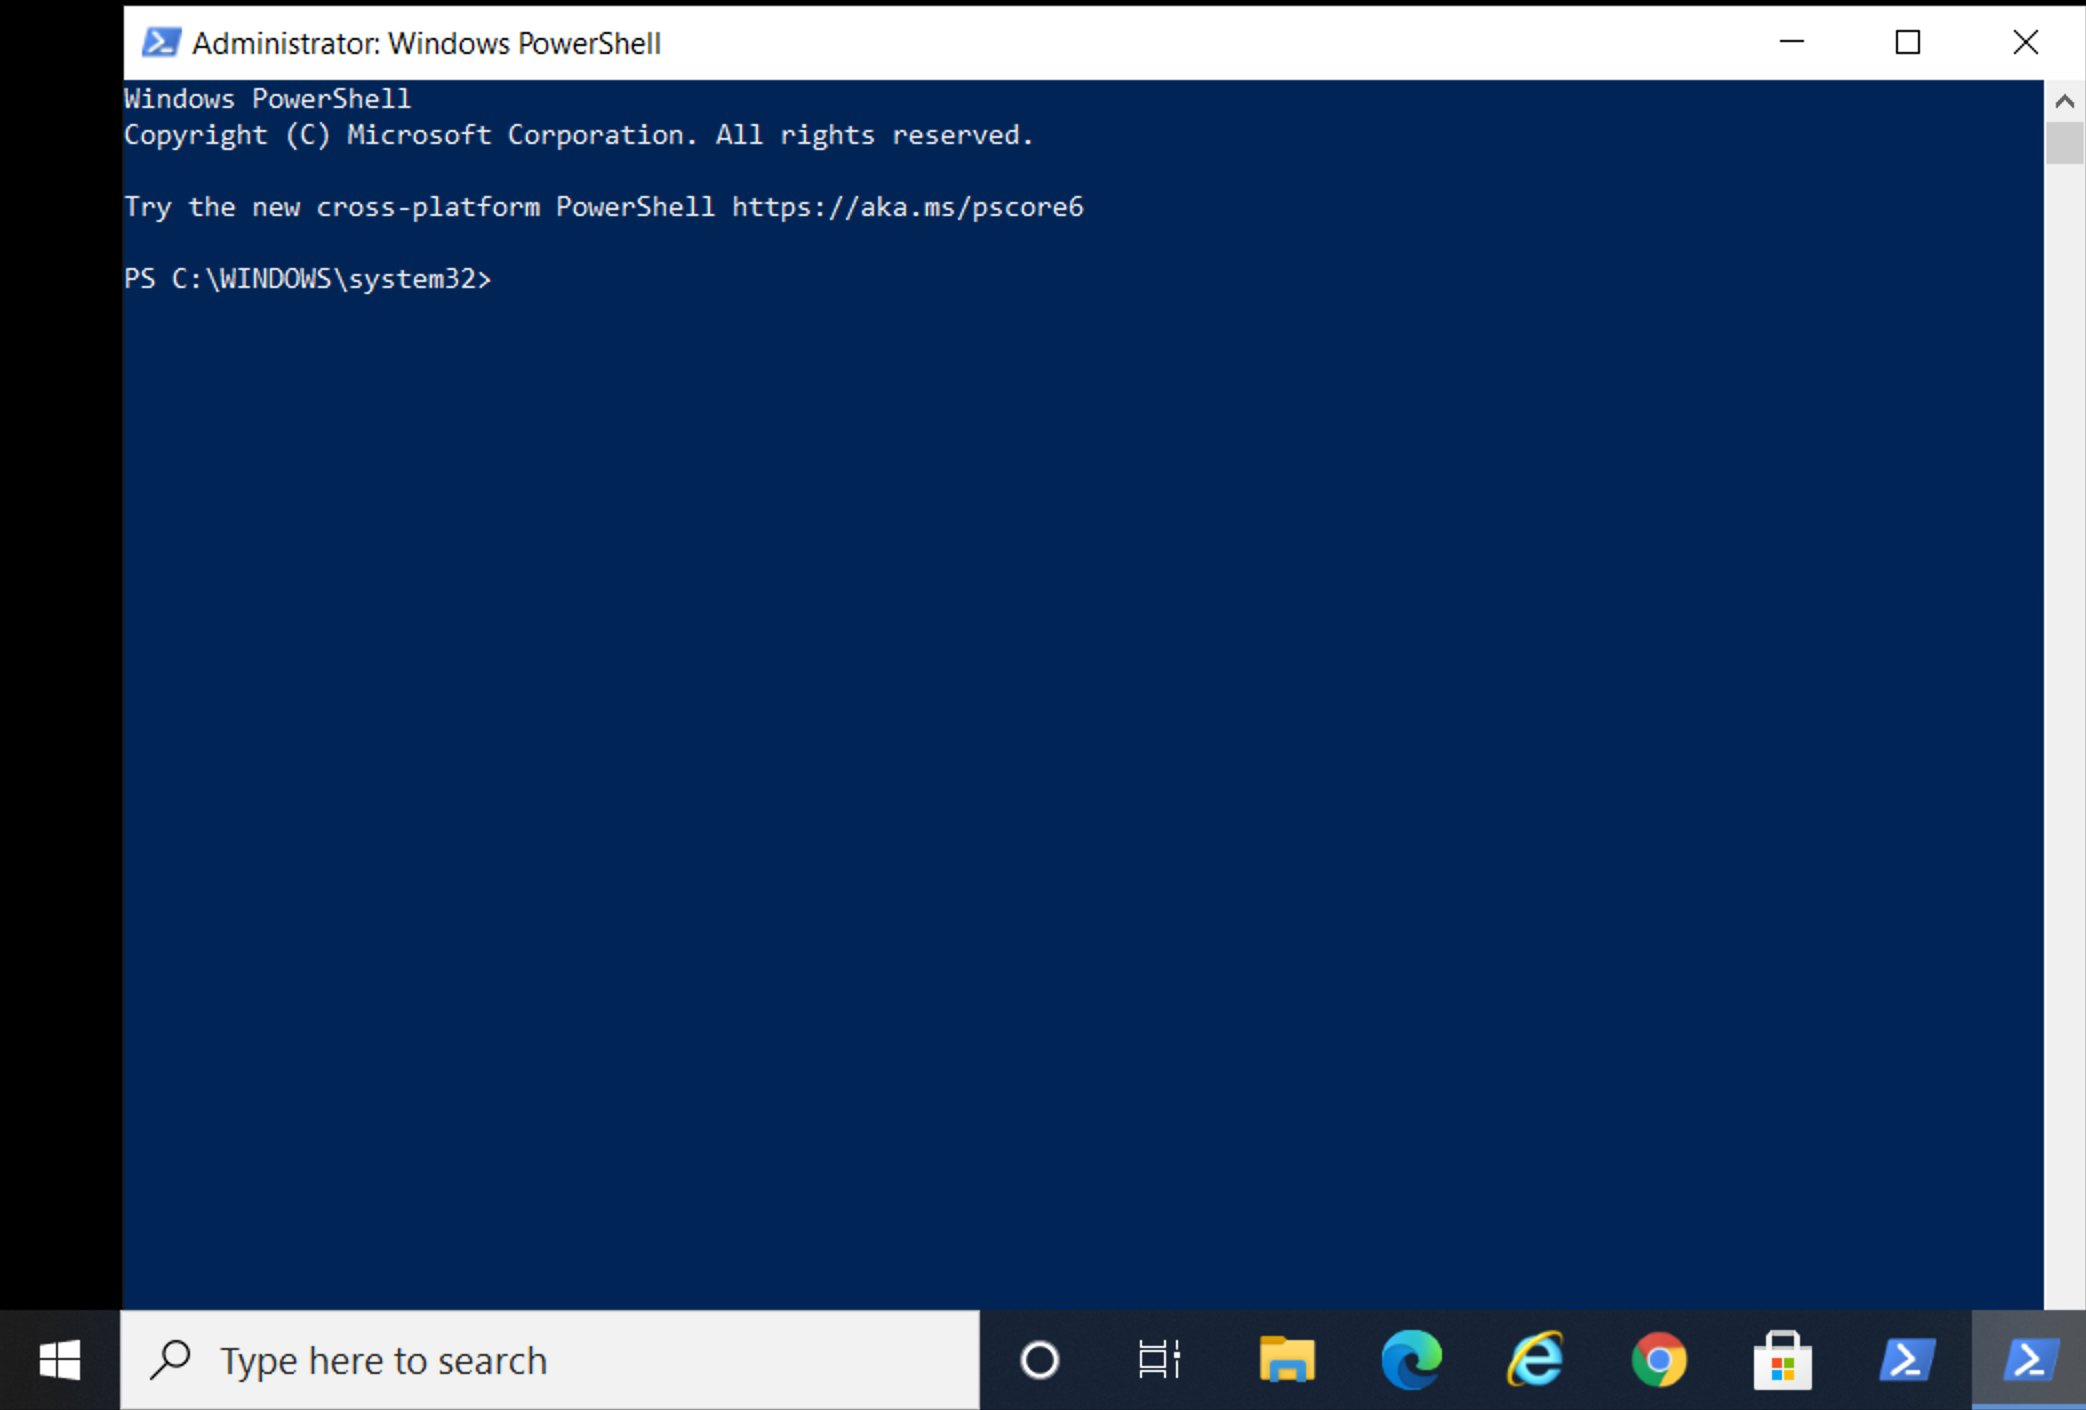 PowerShell Launches and presents as follows